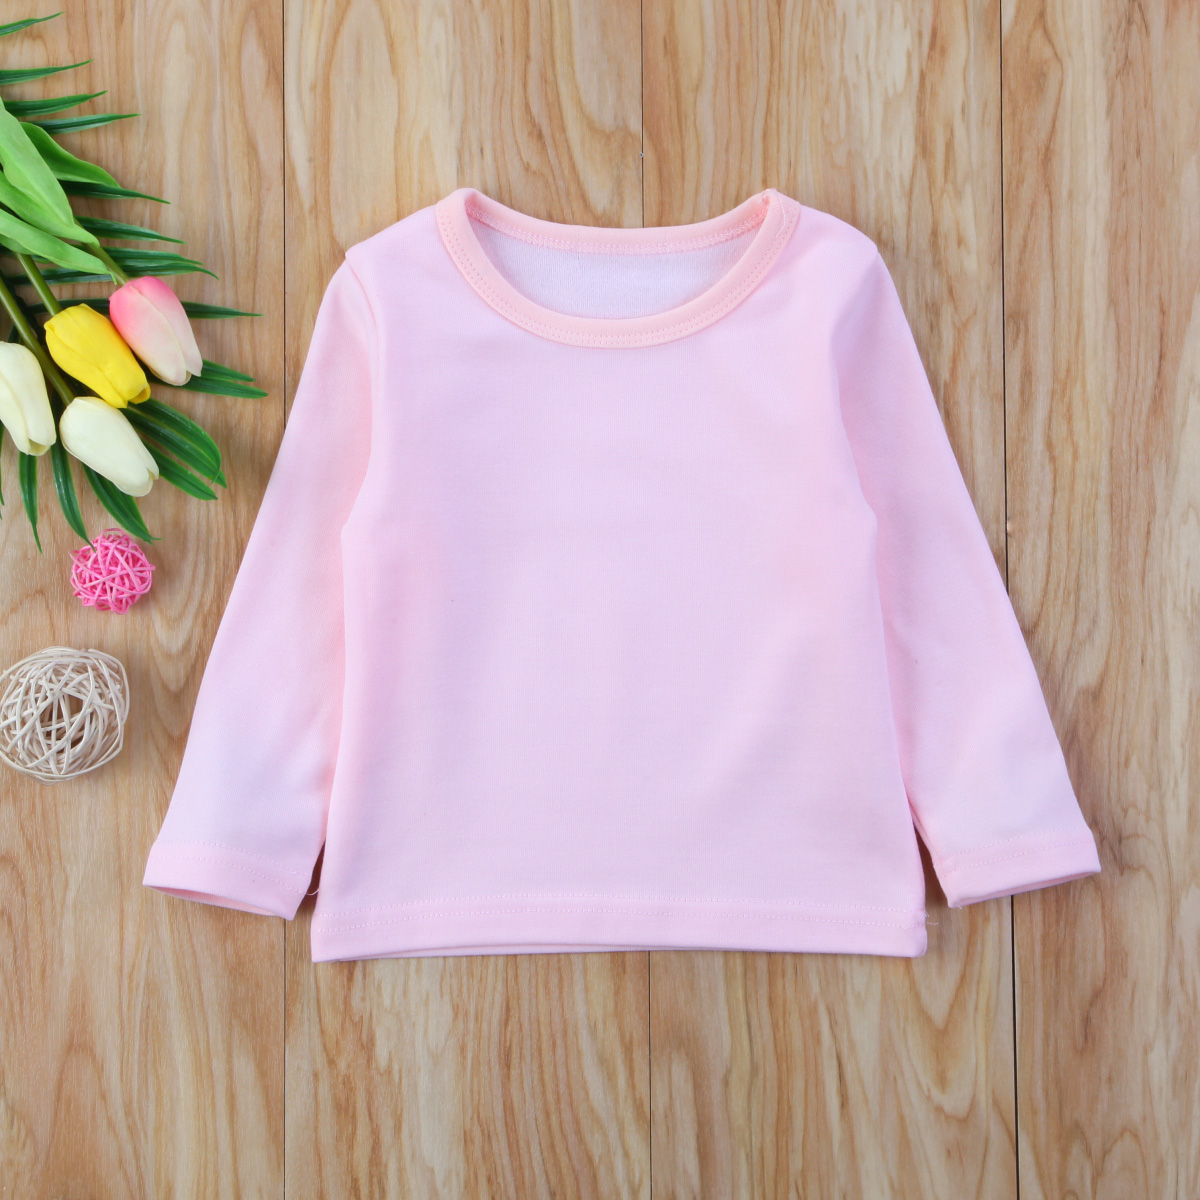 Autumn Cotton Newborn Infant Kids Baby Boys Girls Clothes Solid Cotton Soft Clothing Long Sleeves T-shirt Tops 3